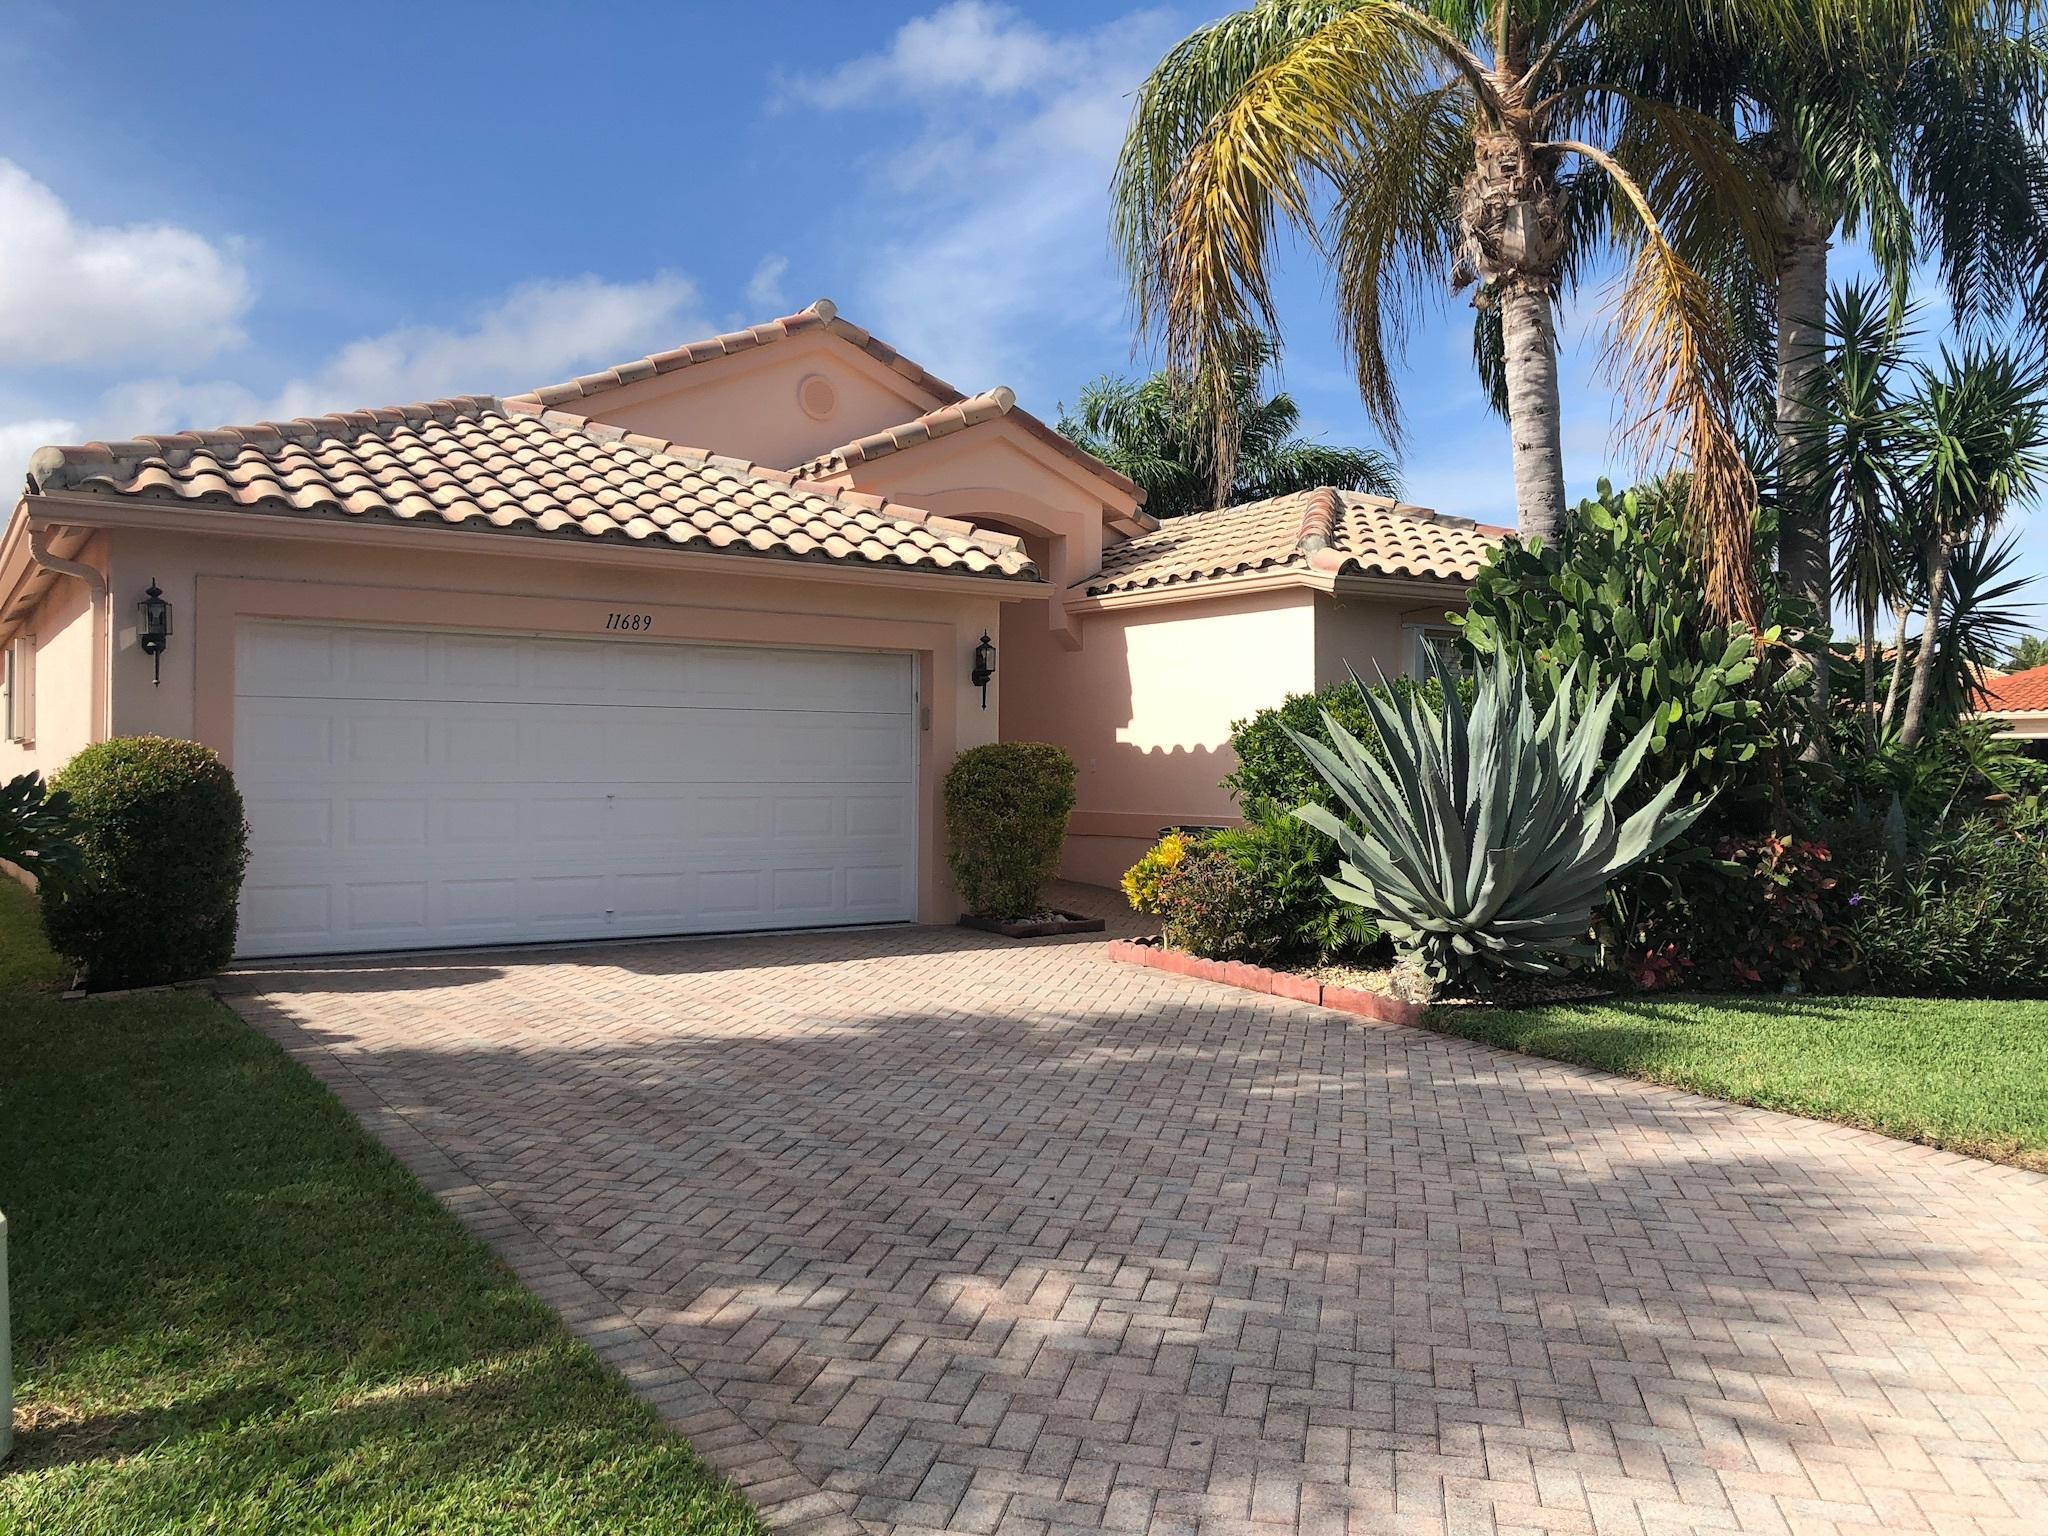 11689 Dove Hollow Avenue Boynton Beach 33437 - photo